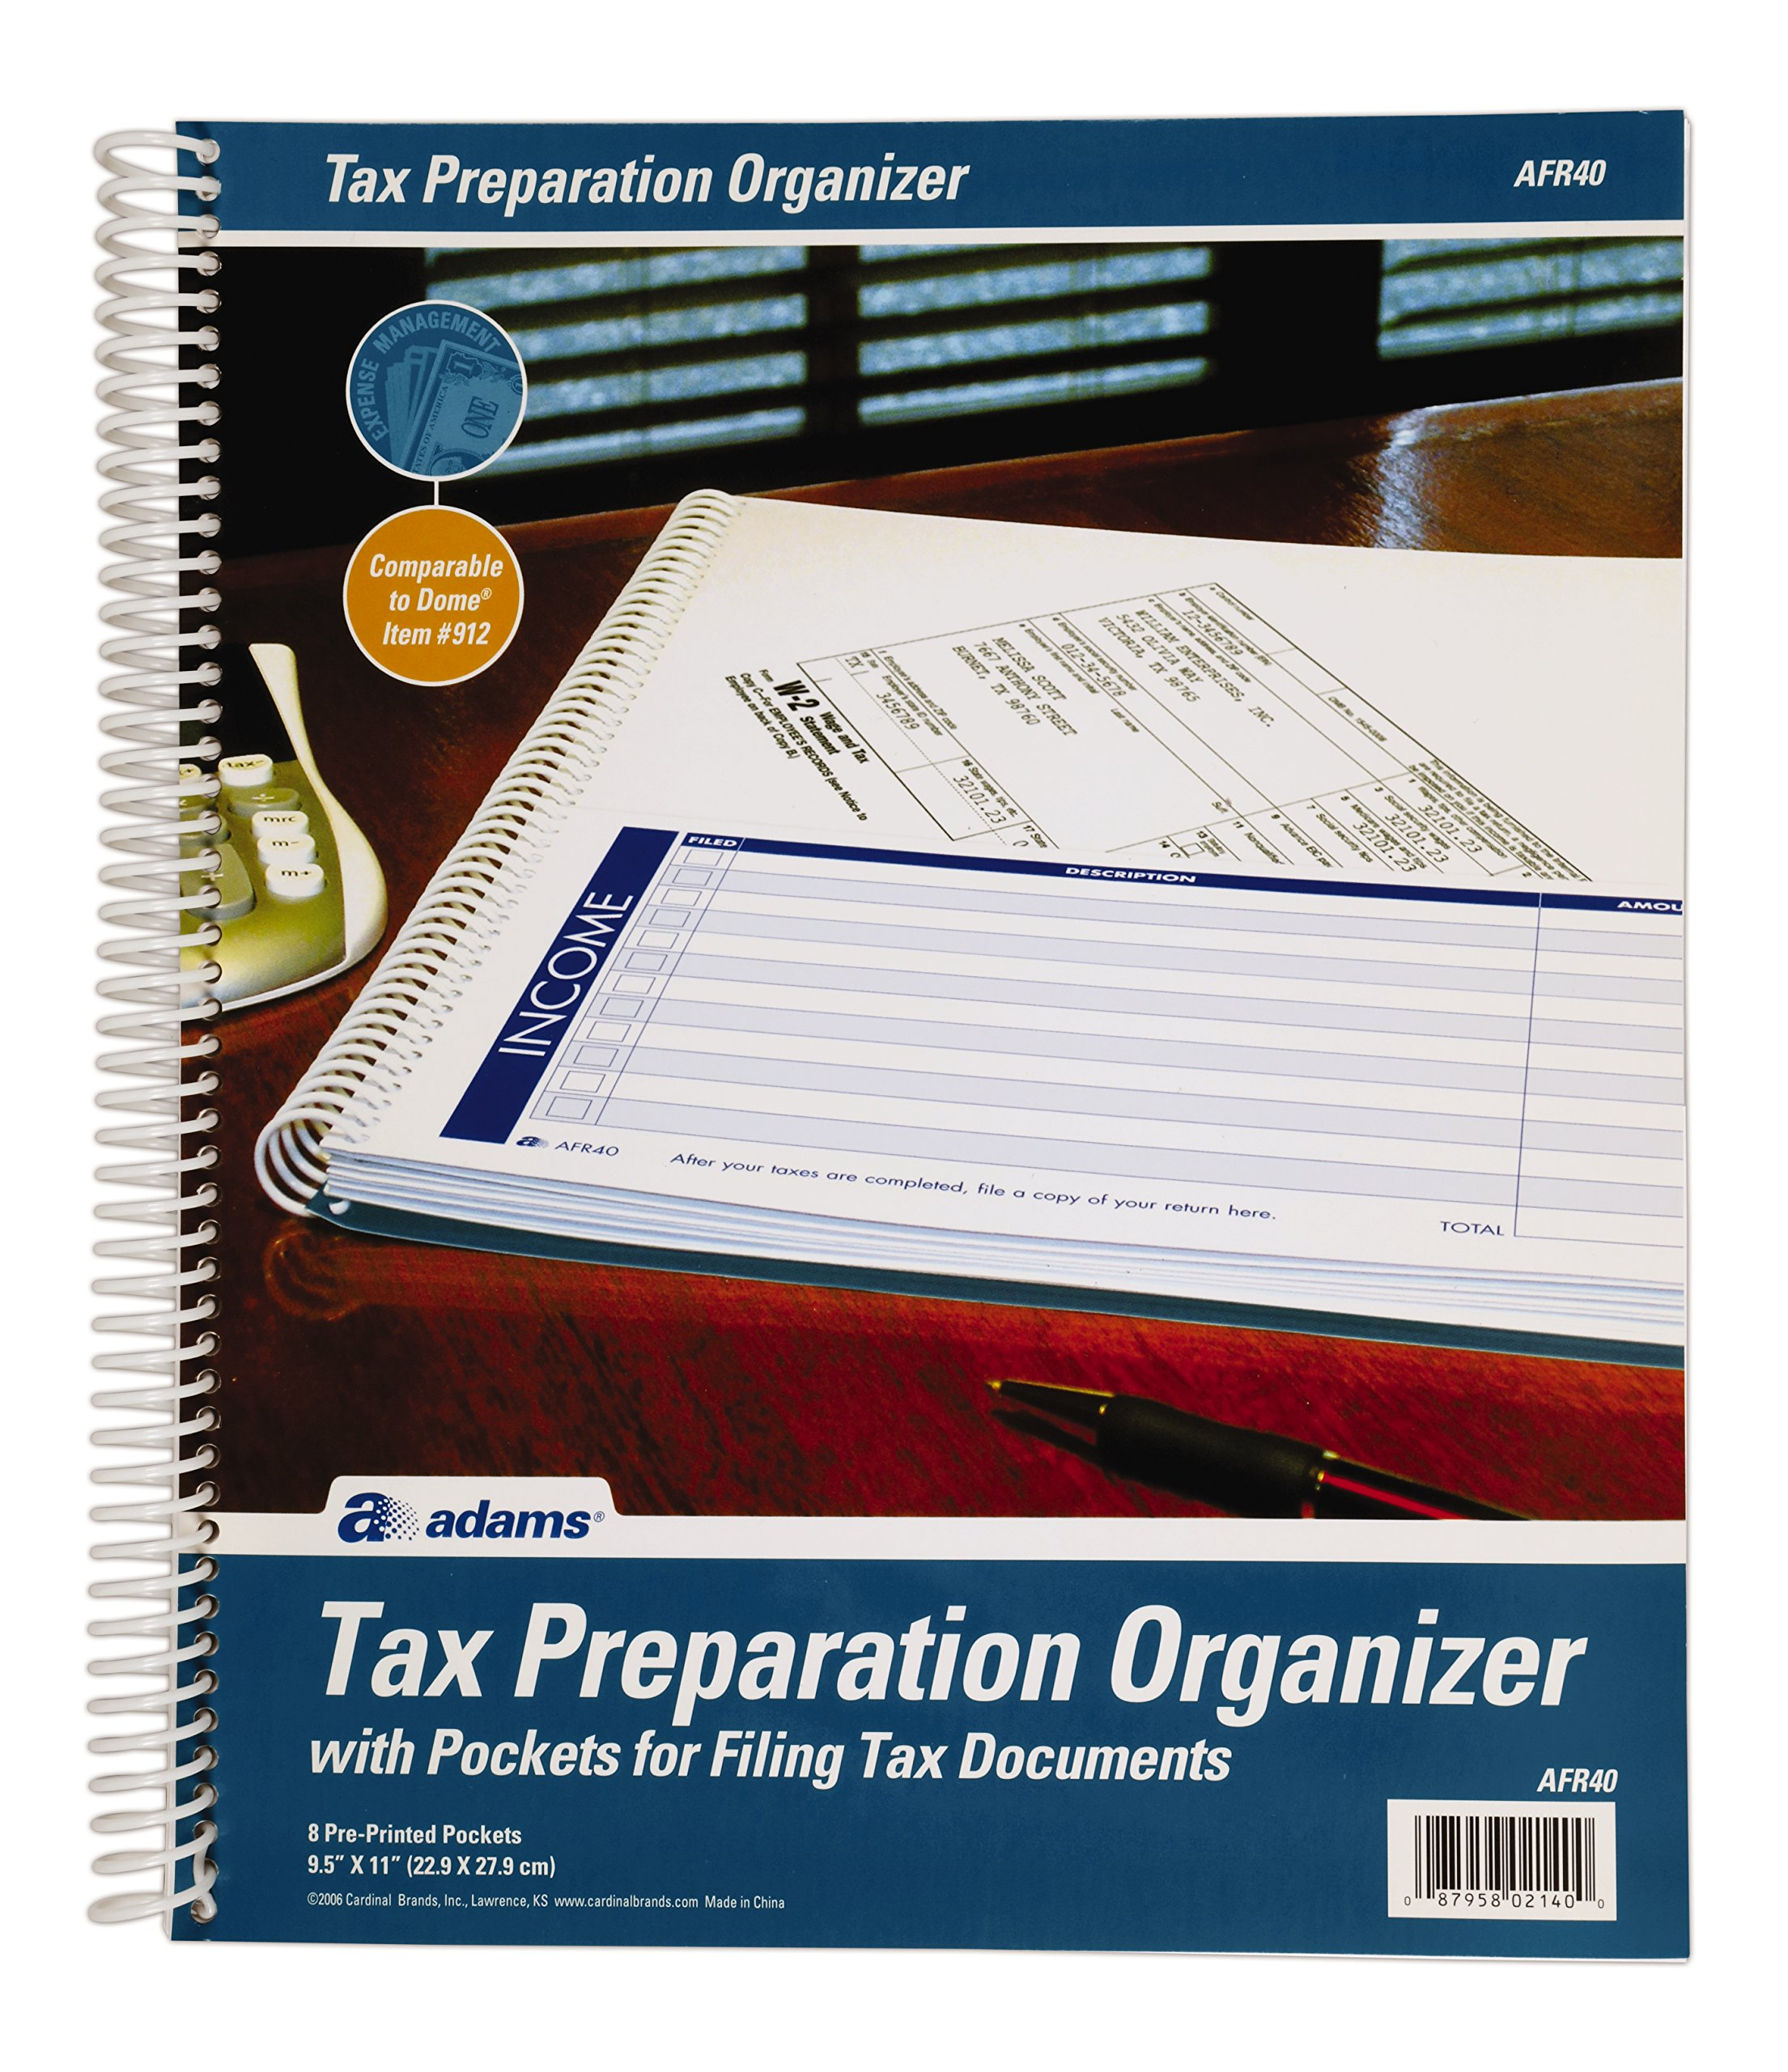 Adams Tax Record Organizer, 9.5 x 11 Inches, With 8 Pre-Printed Pockets (AFR40)